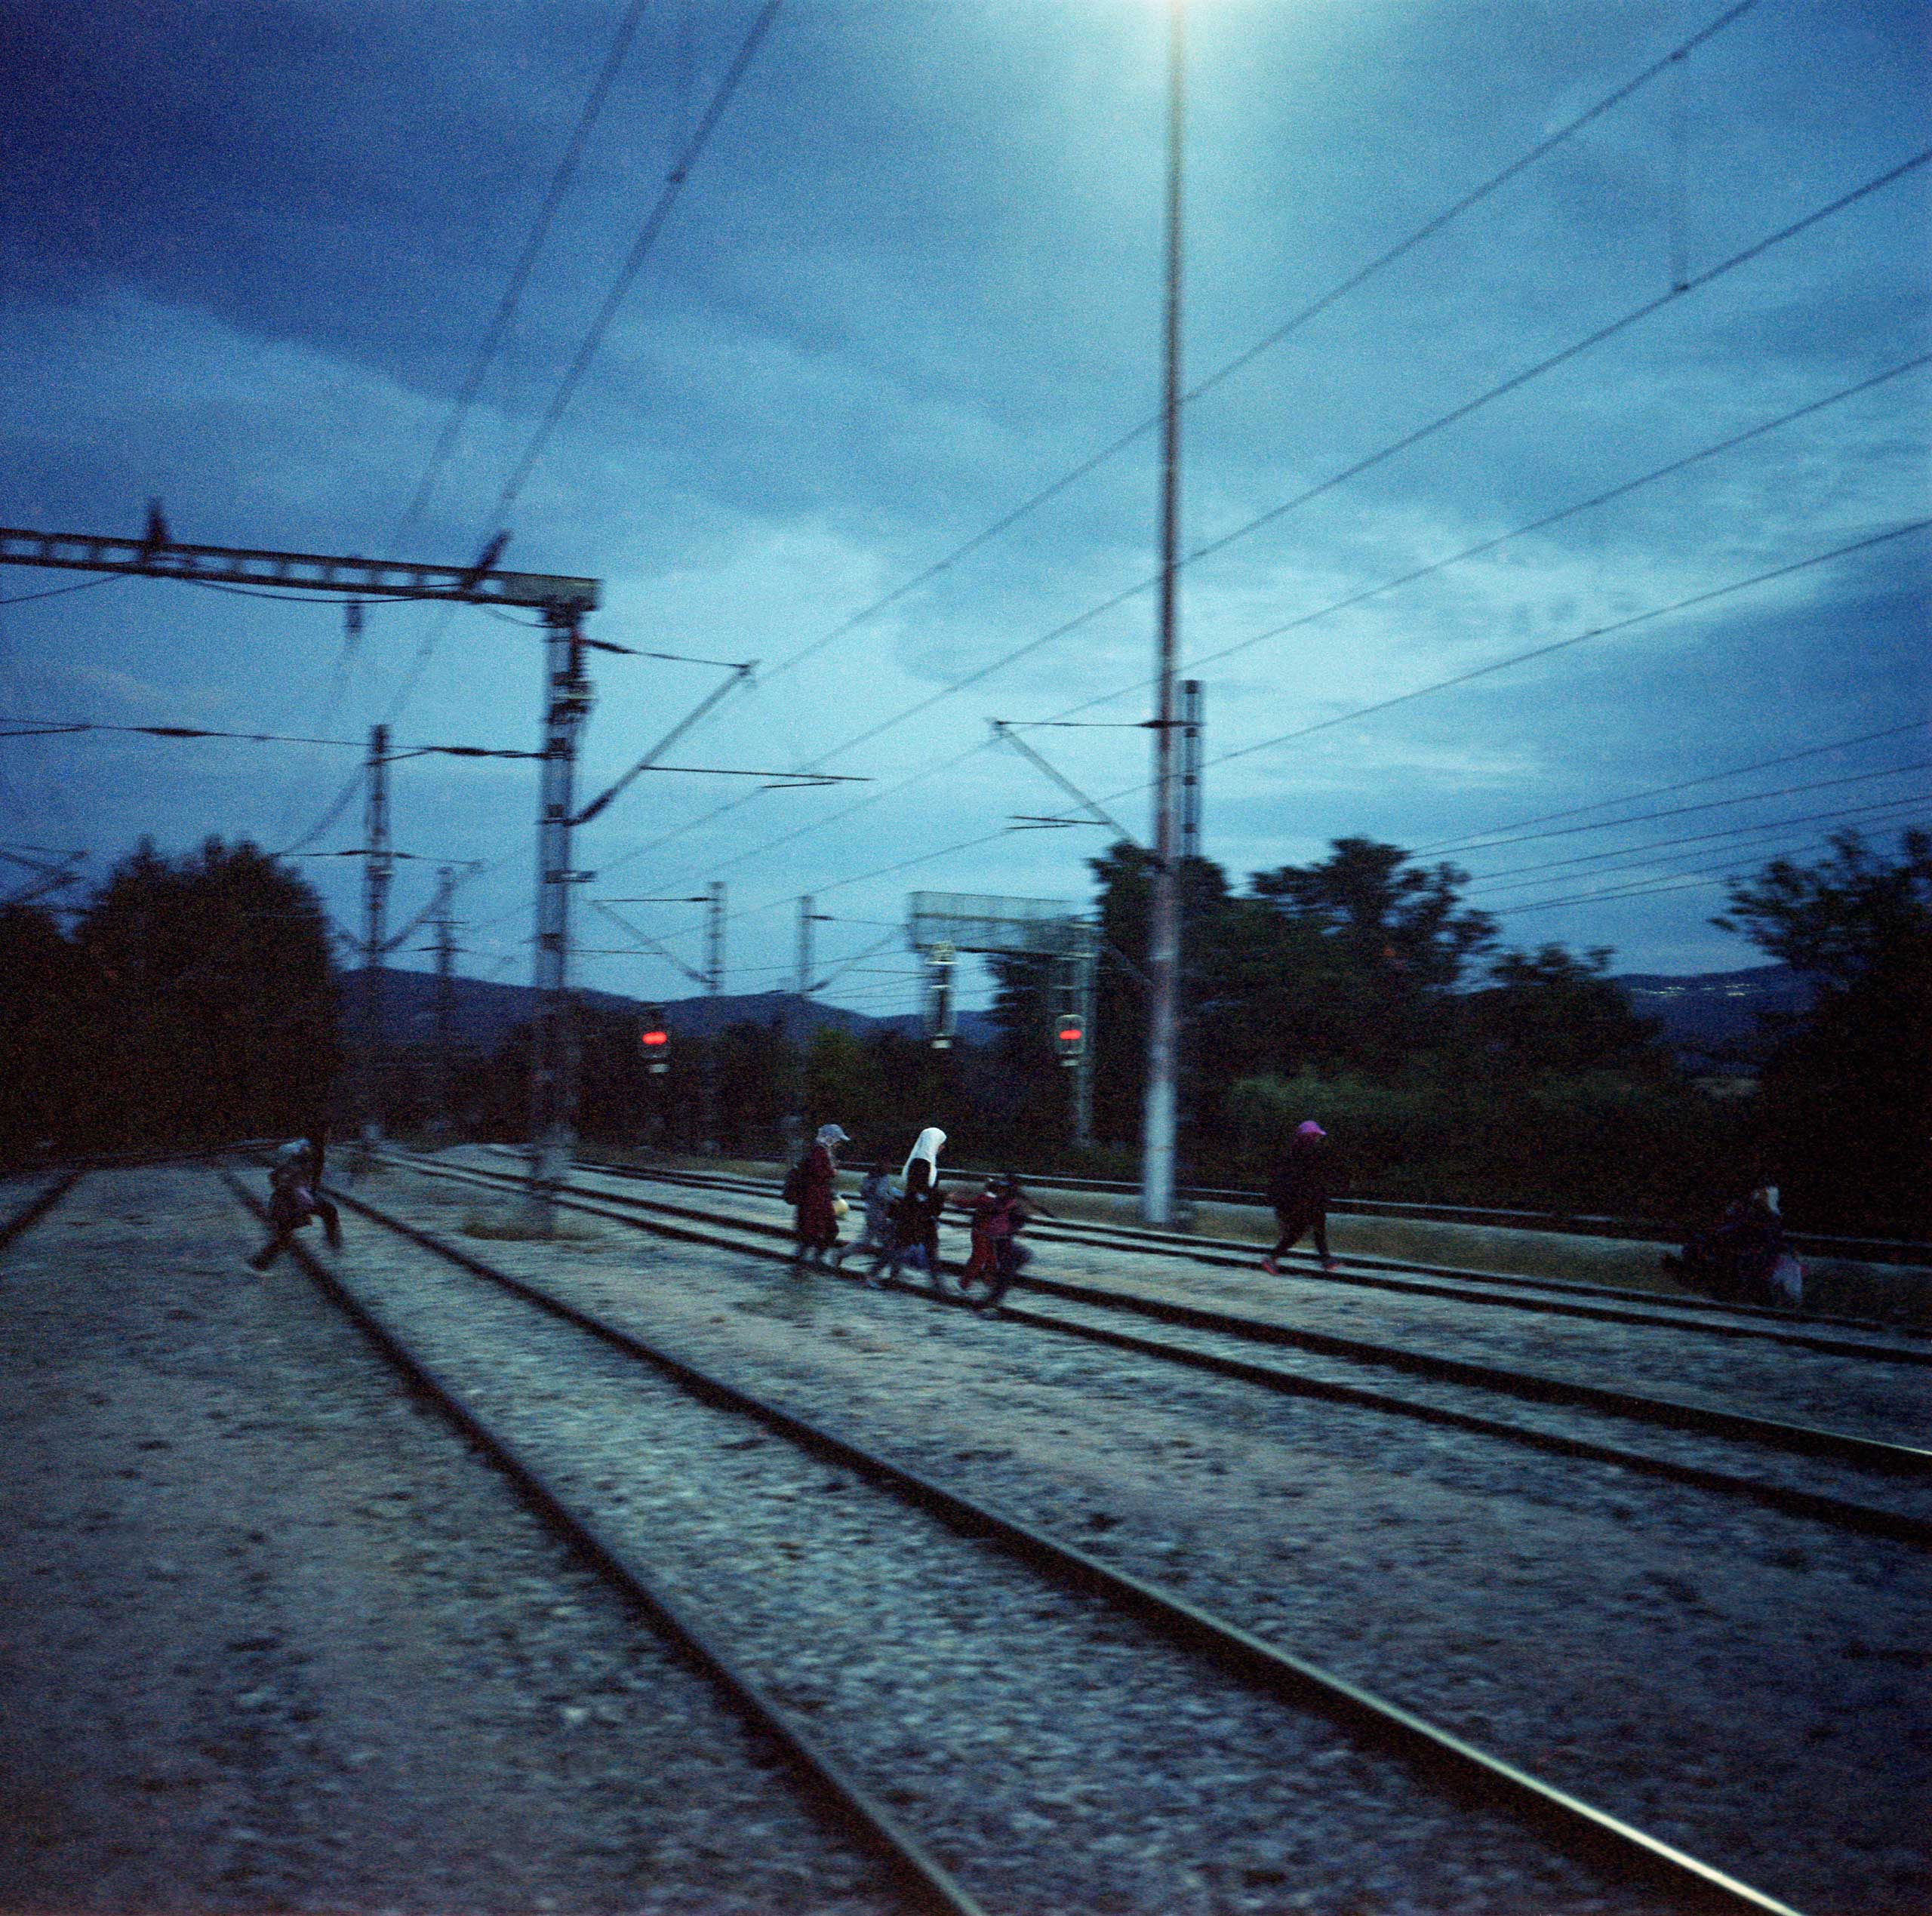 Refugees walking across train tracks in Idomeni, a border town in Northern Greece. June 2015.